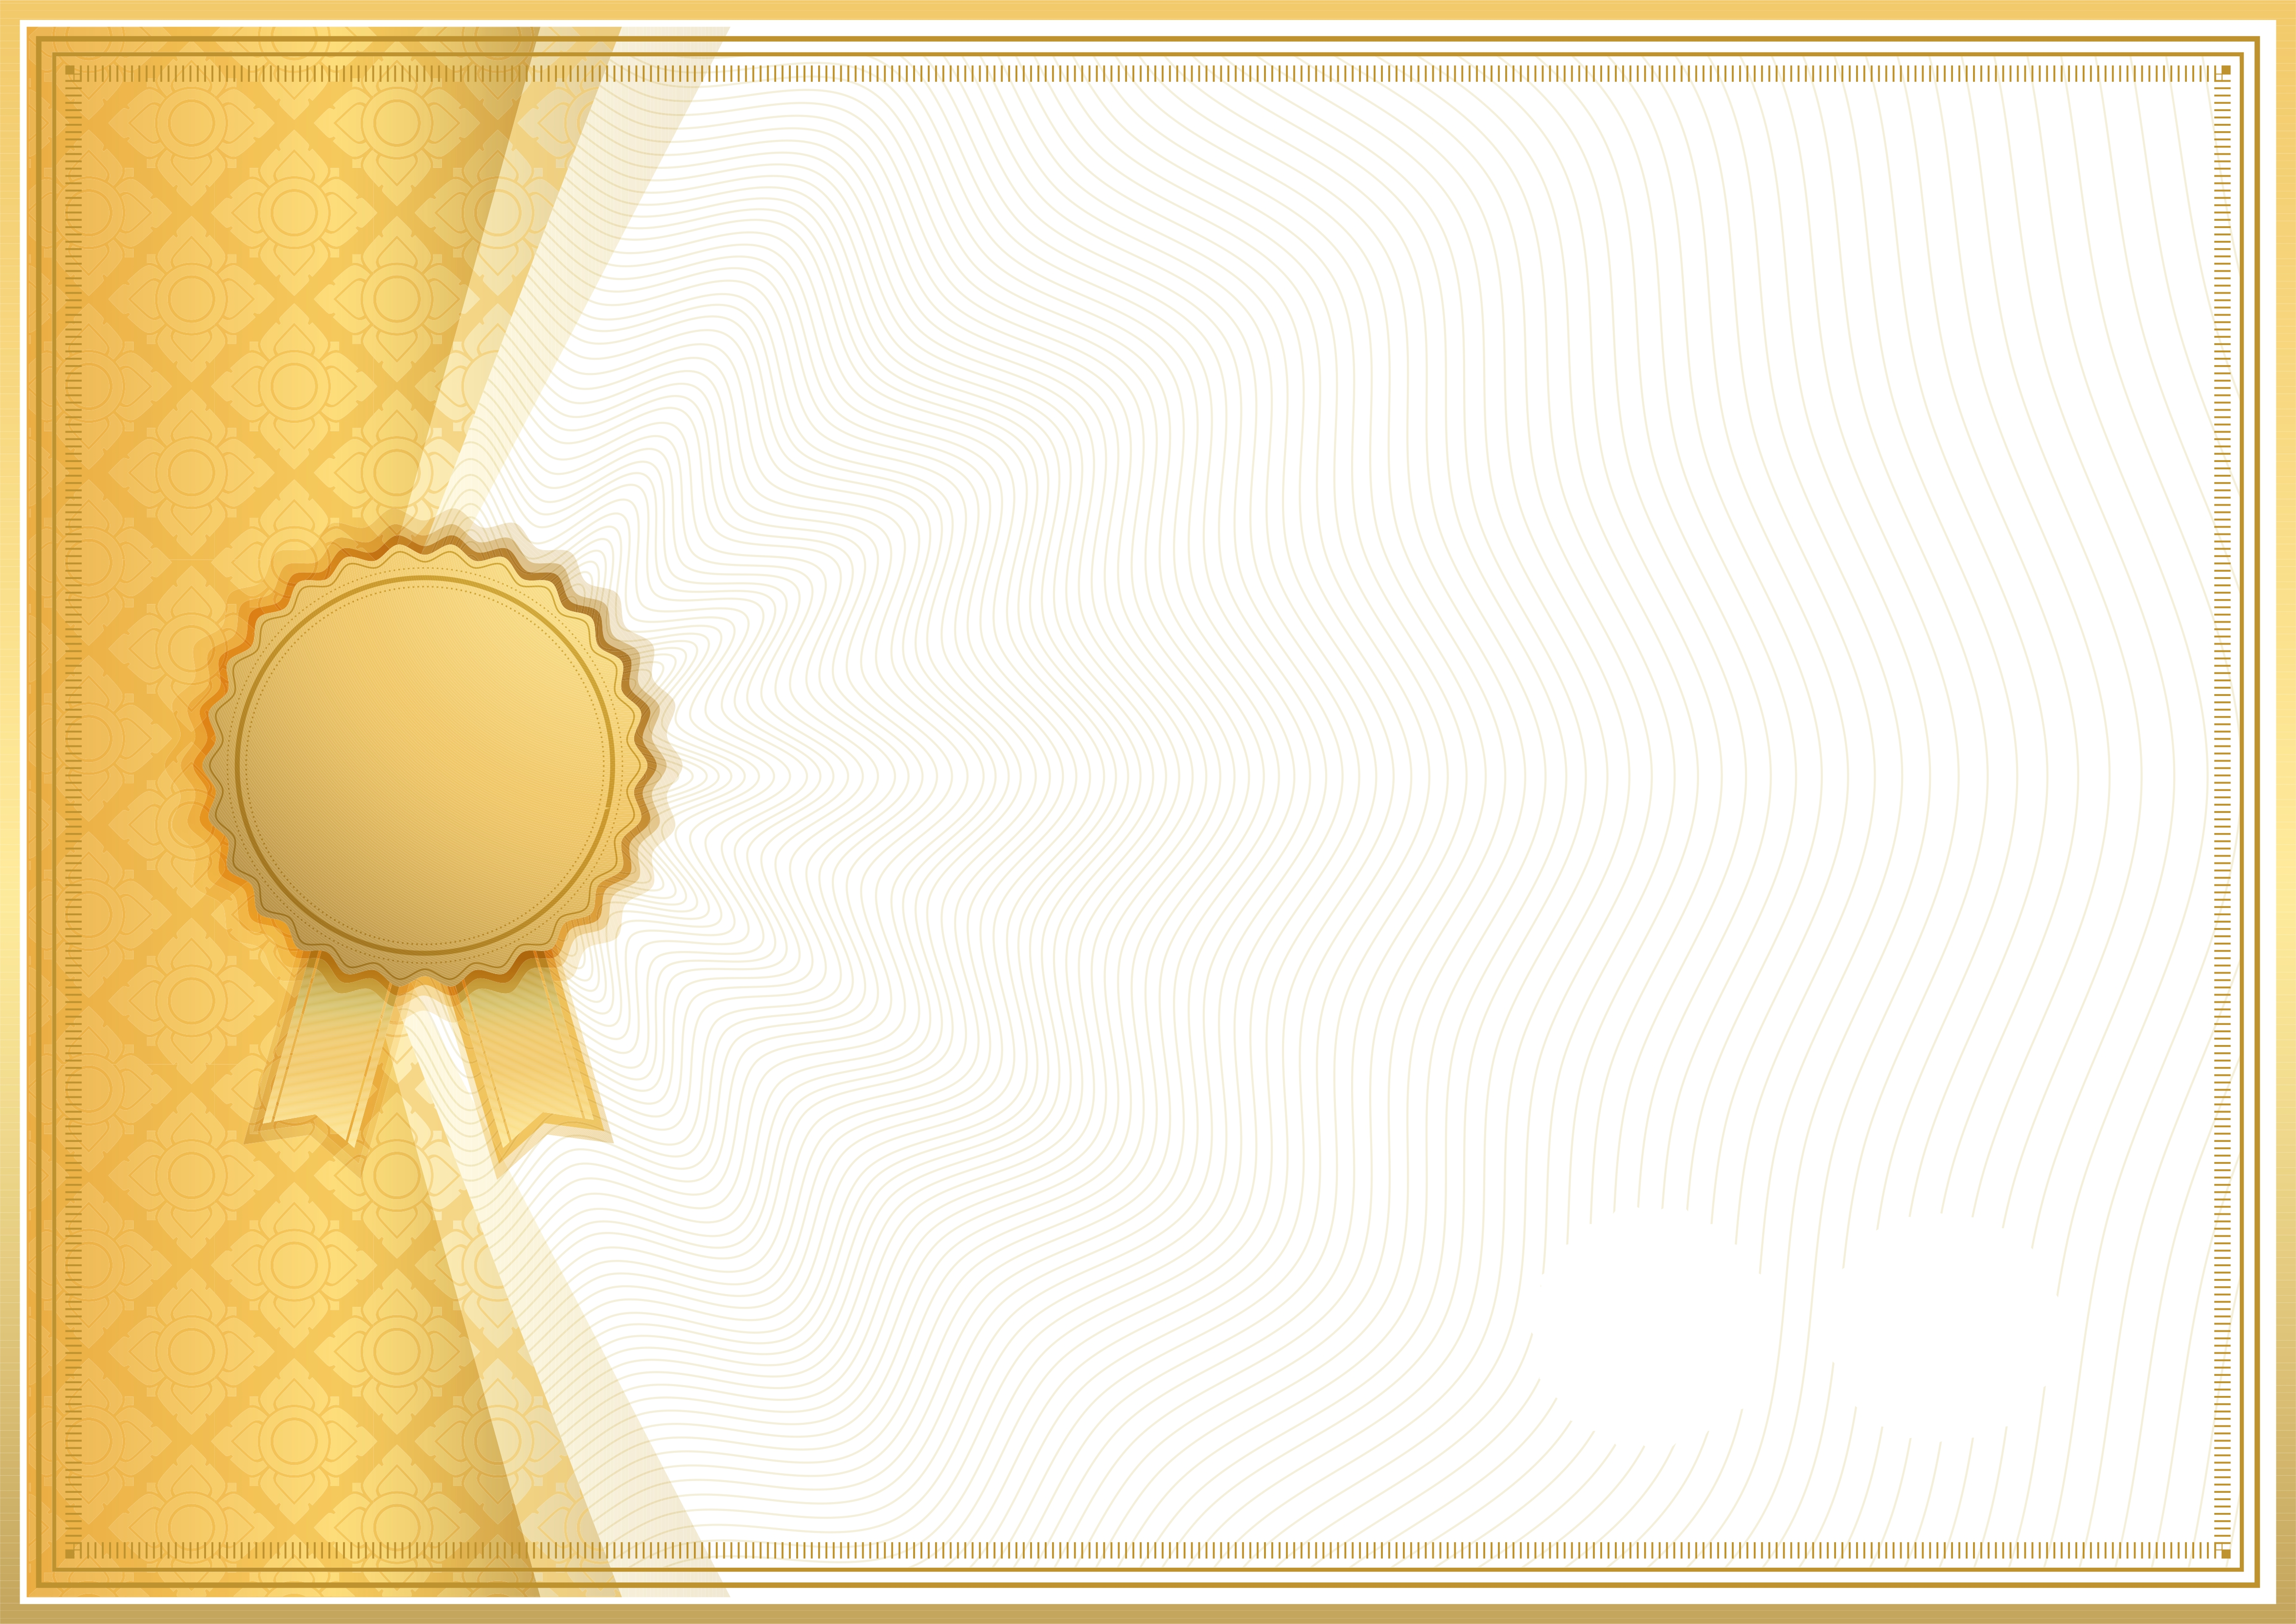 Certificate Background Photos, Certificate Background Vectors and.